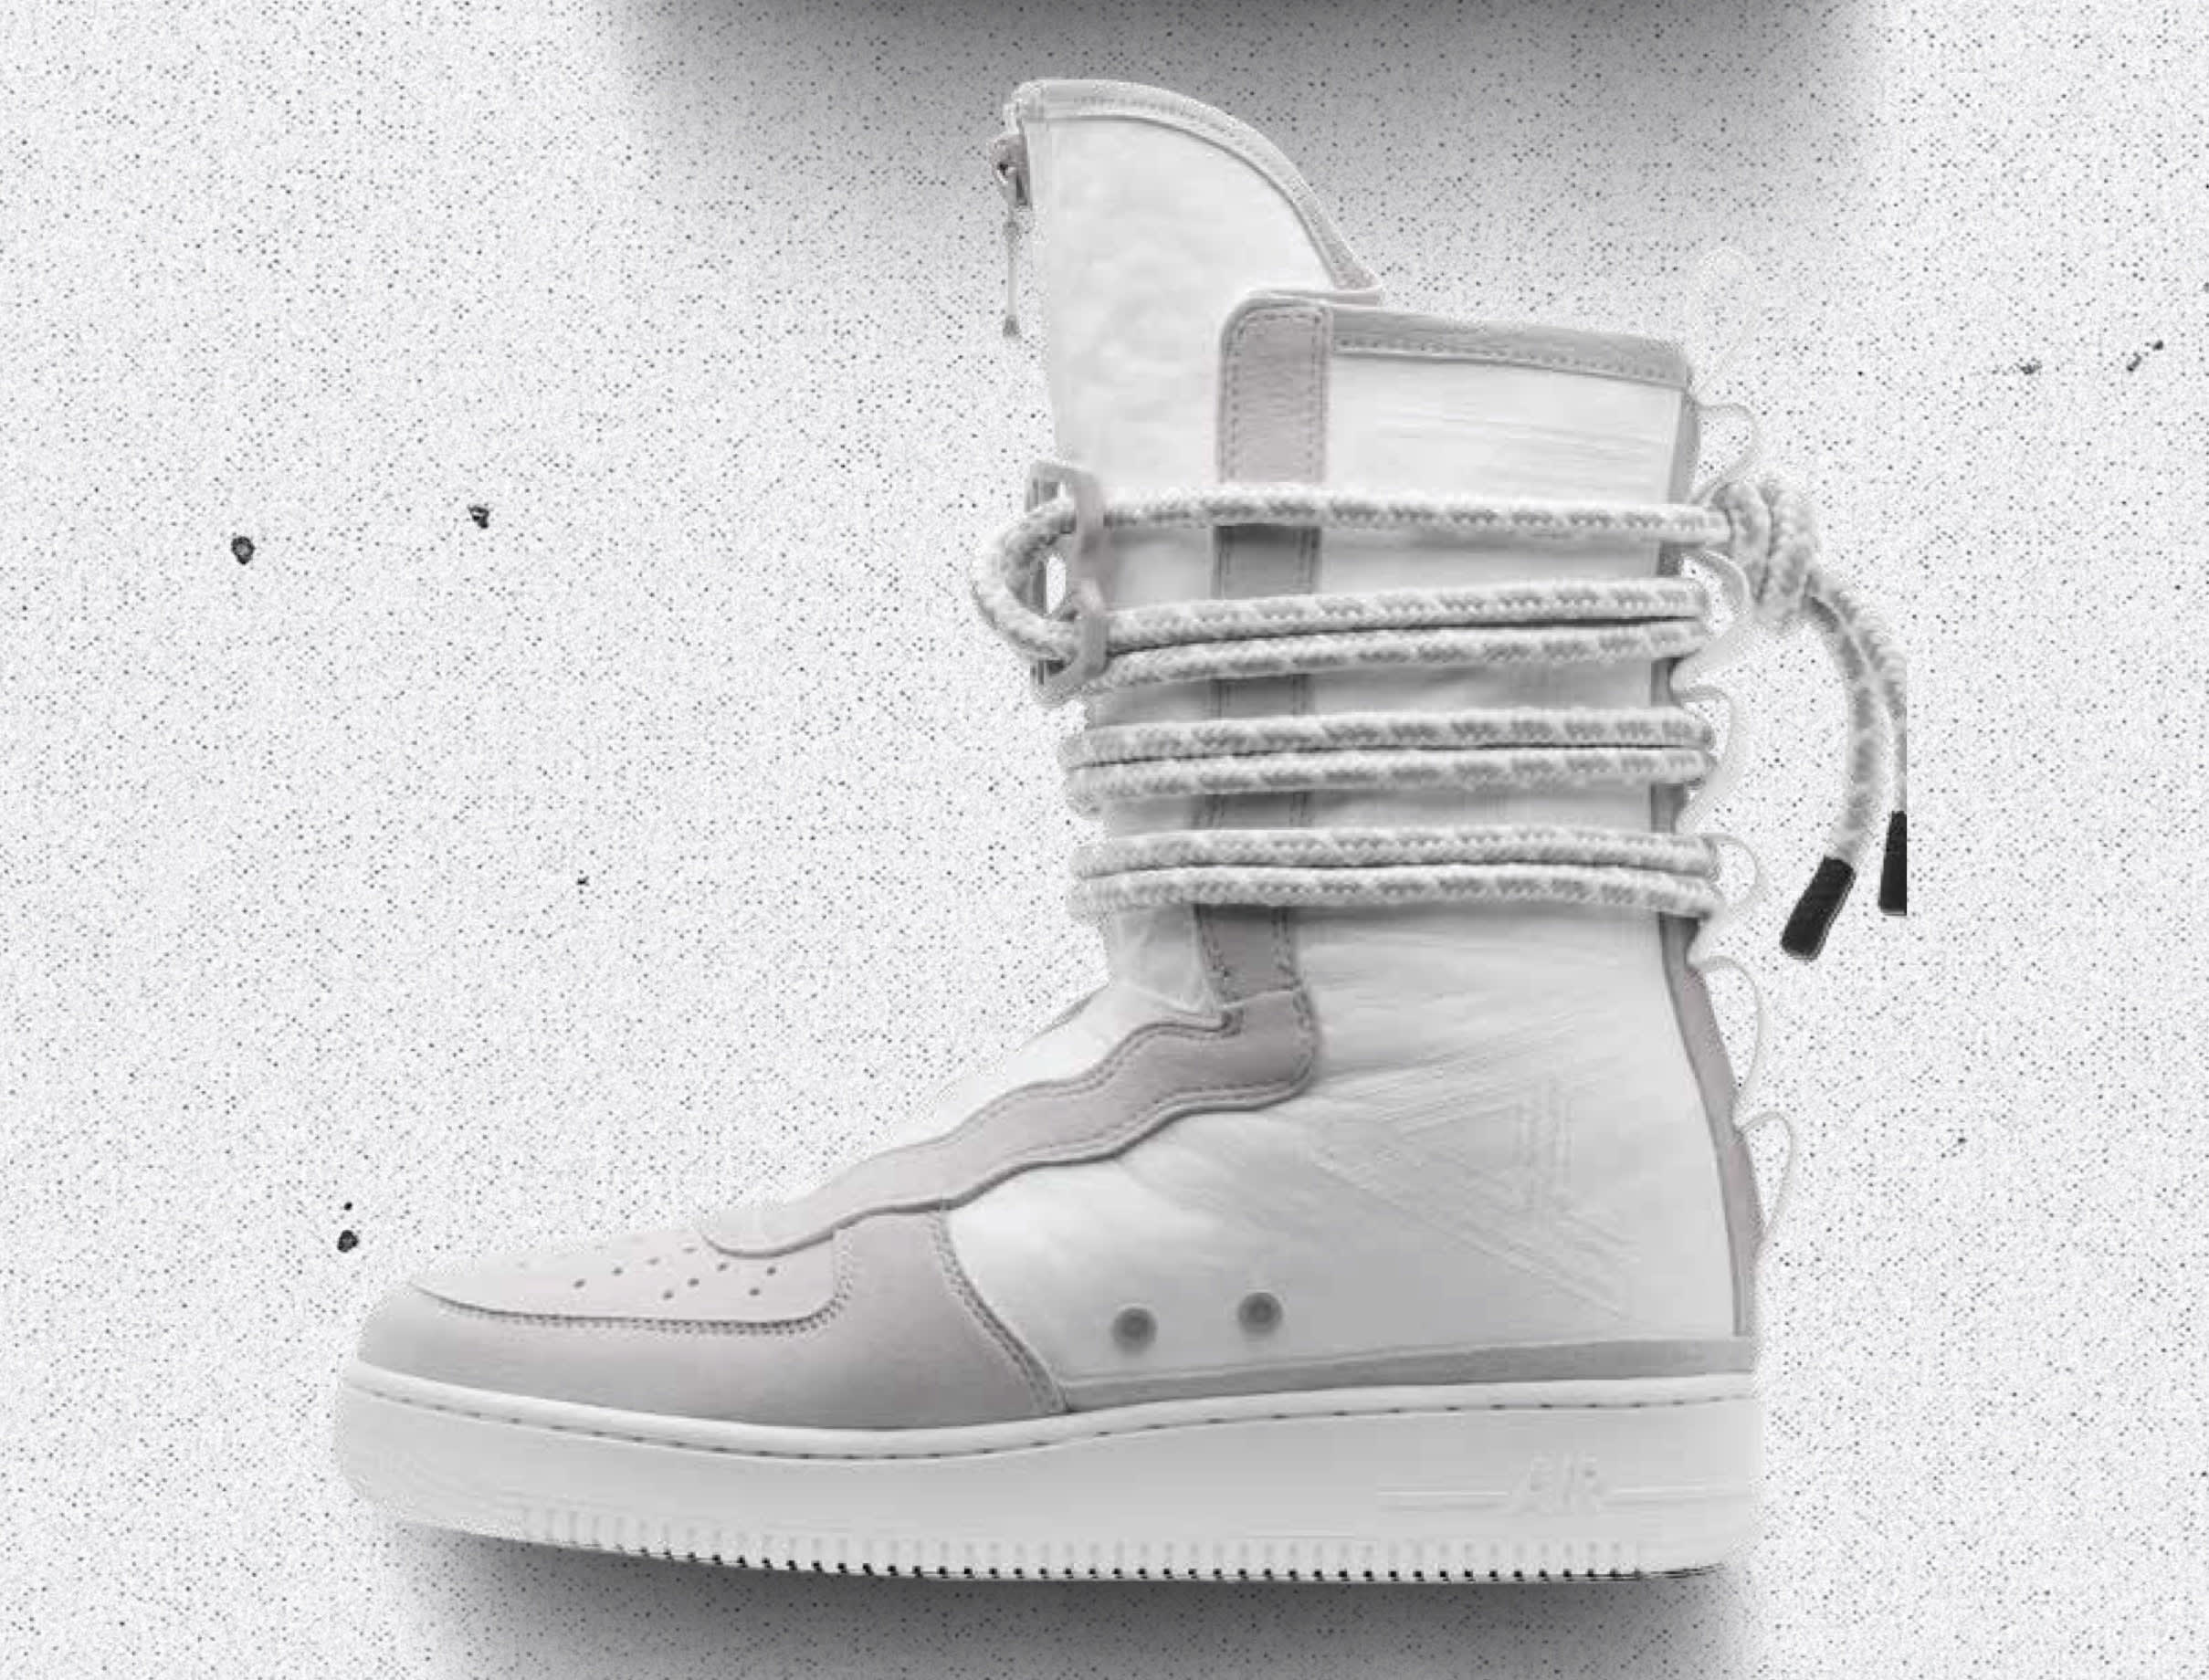 Nike SF AF1 High 90/10 Pack